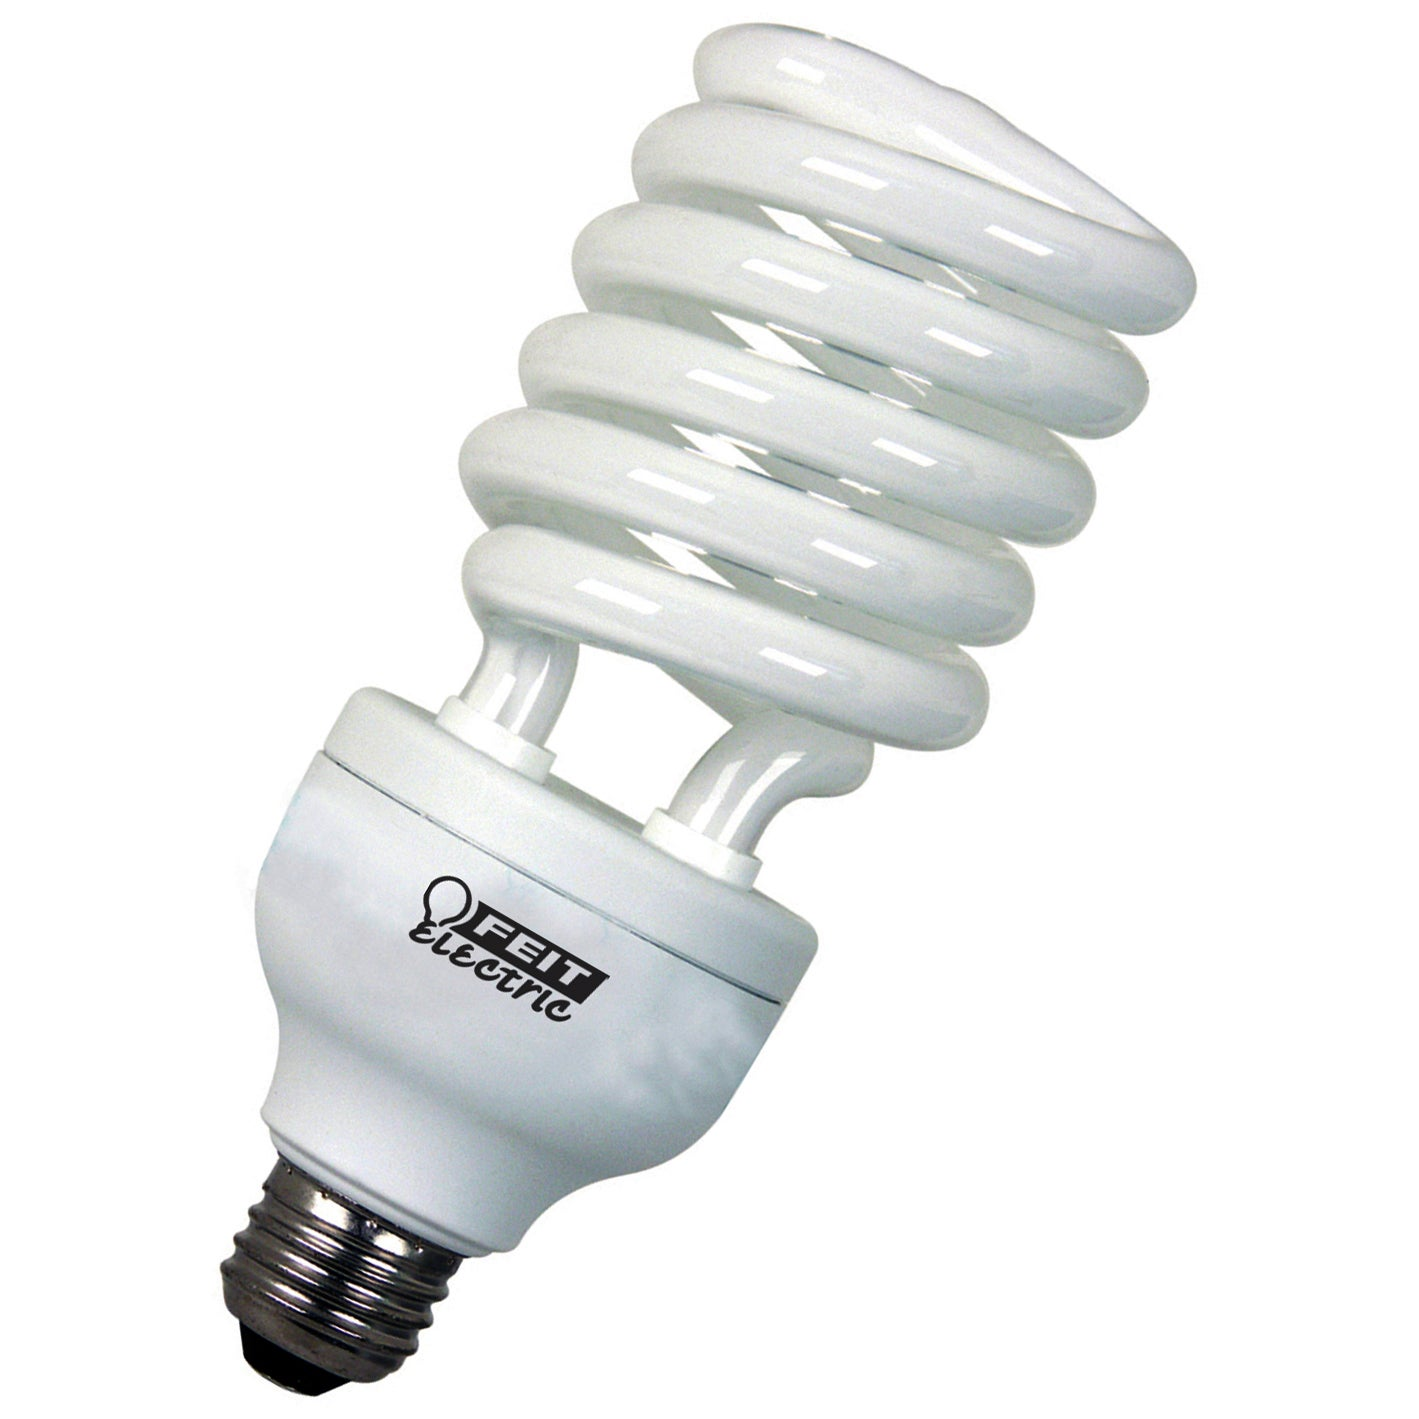 FEIT Electric ESL40T/ECO 40 Watt Twist CFL Bulb (Light bu...